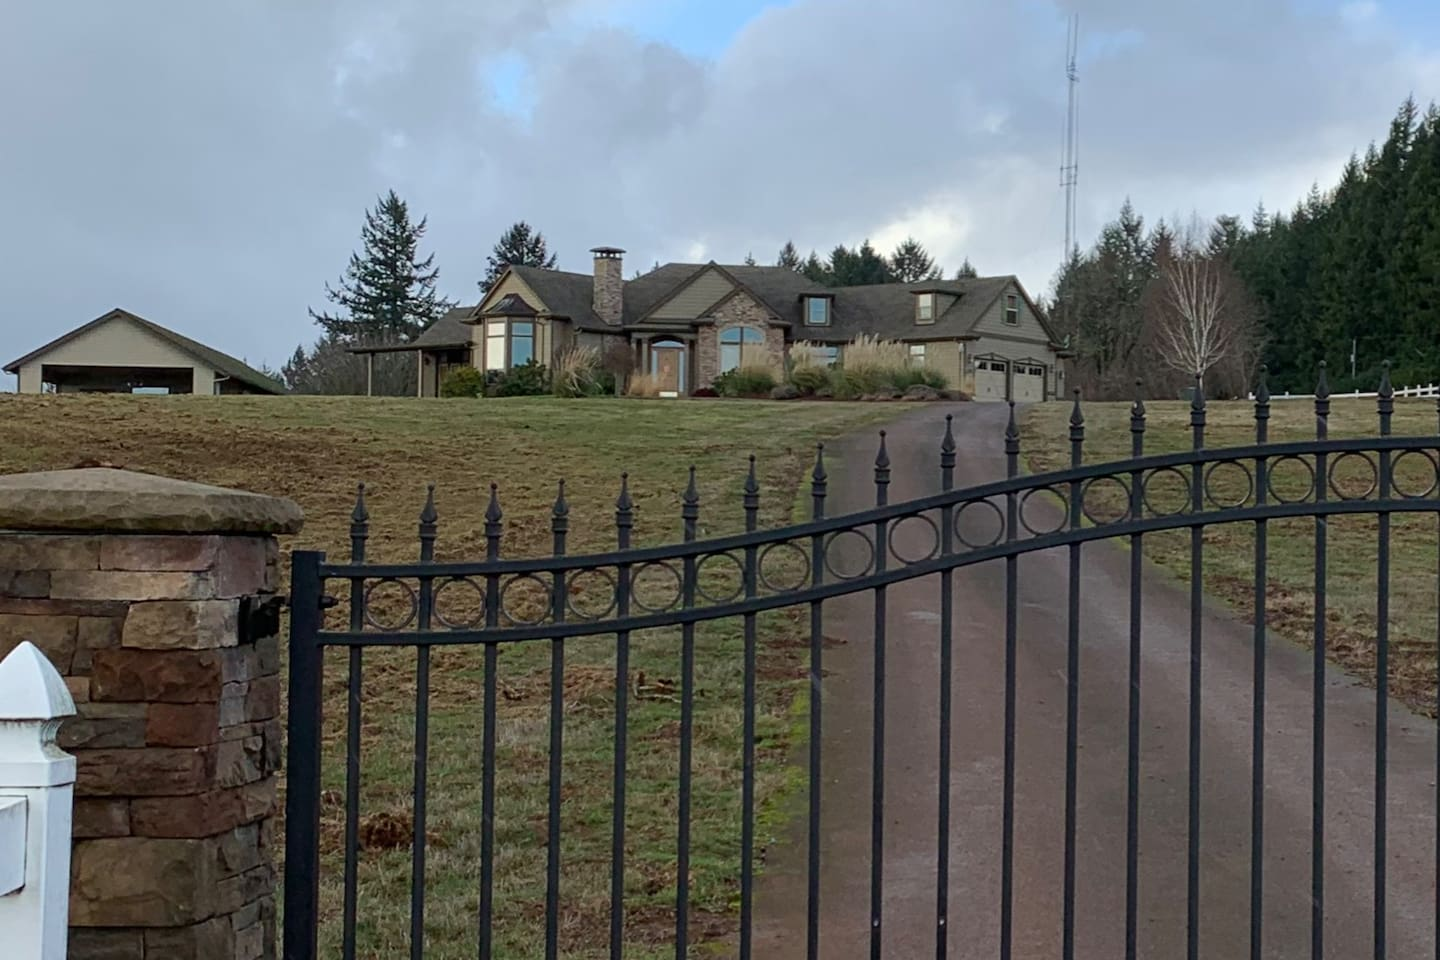 Home with gated entrance